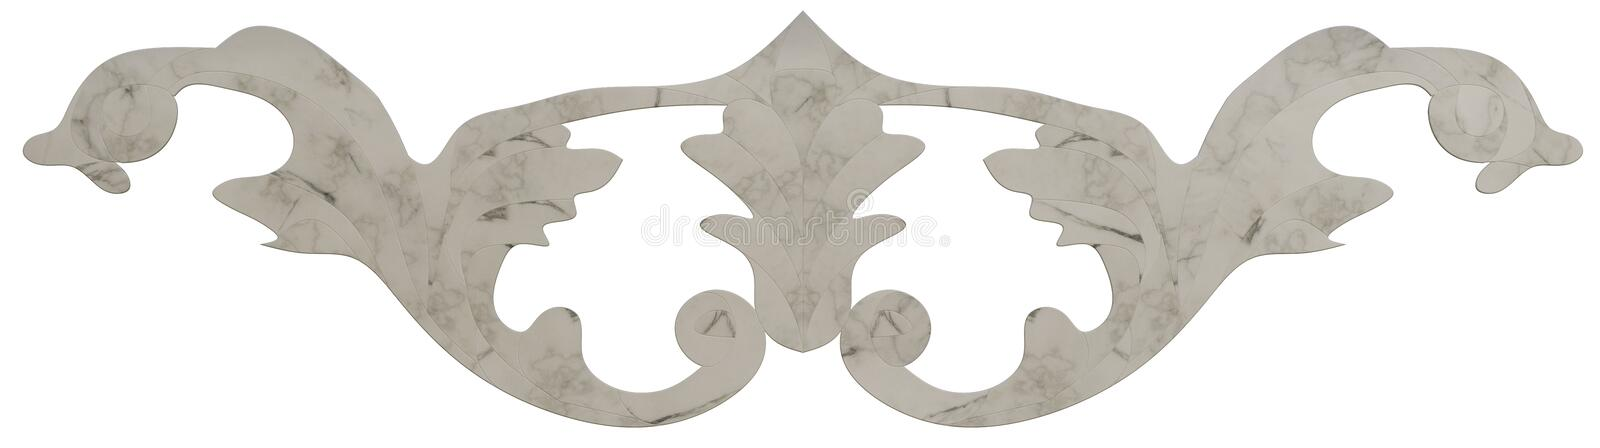 Classic veneer inlay. Detailed inlay of veneer of classical elements for furniture, floors, ceilings and walls stock illustration